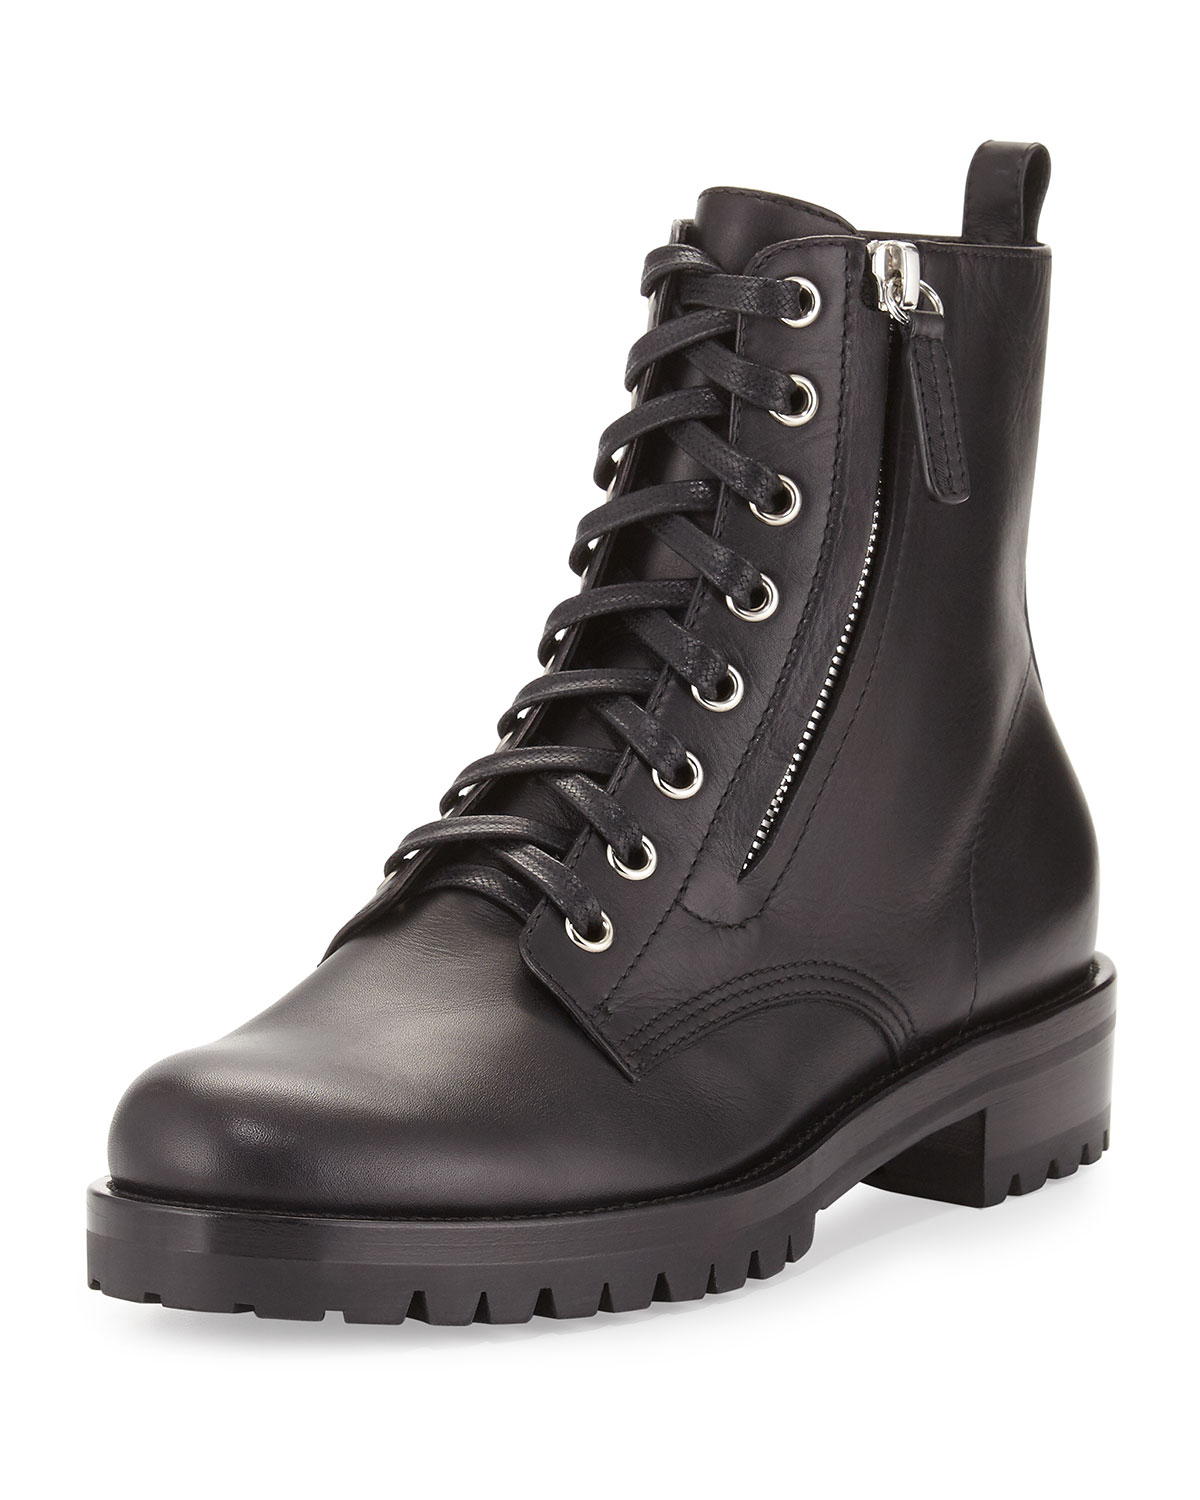 Gianvito Rossi Black Leather Combat Boots Y8kfh6